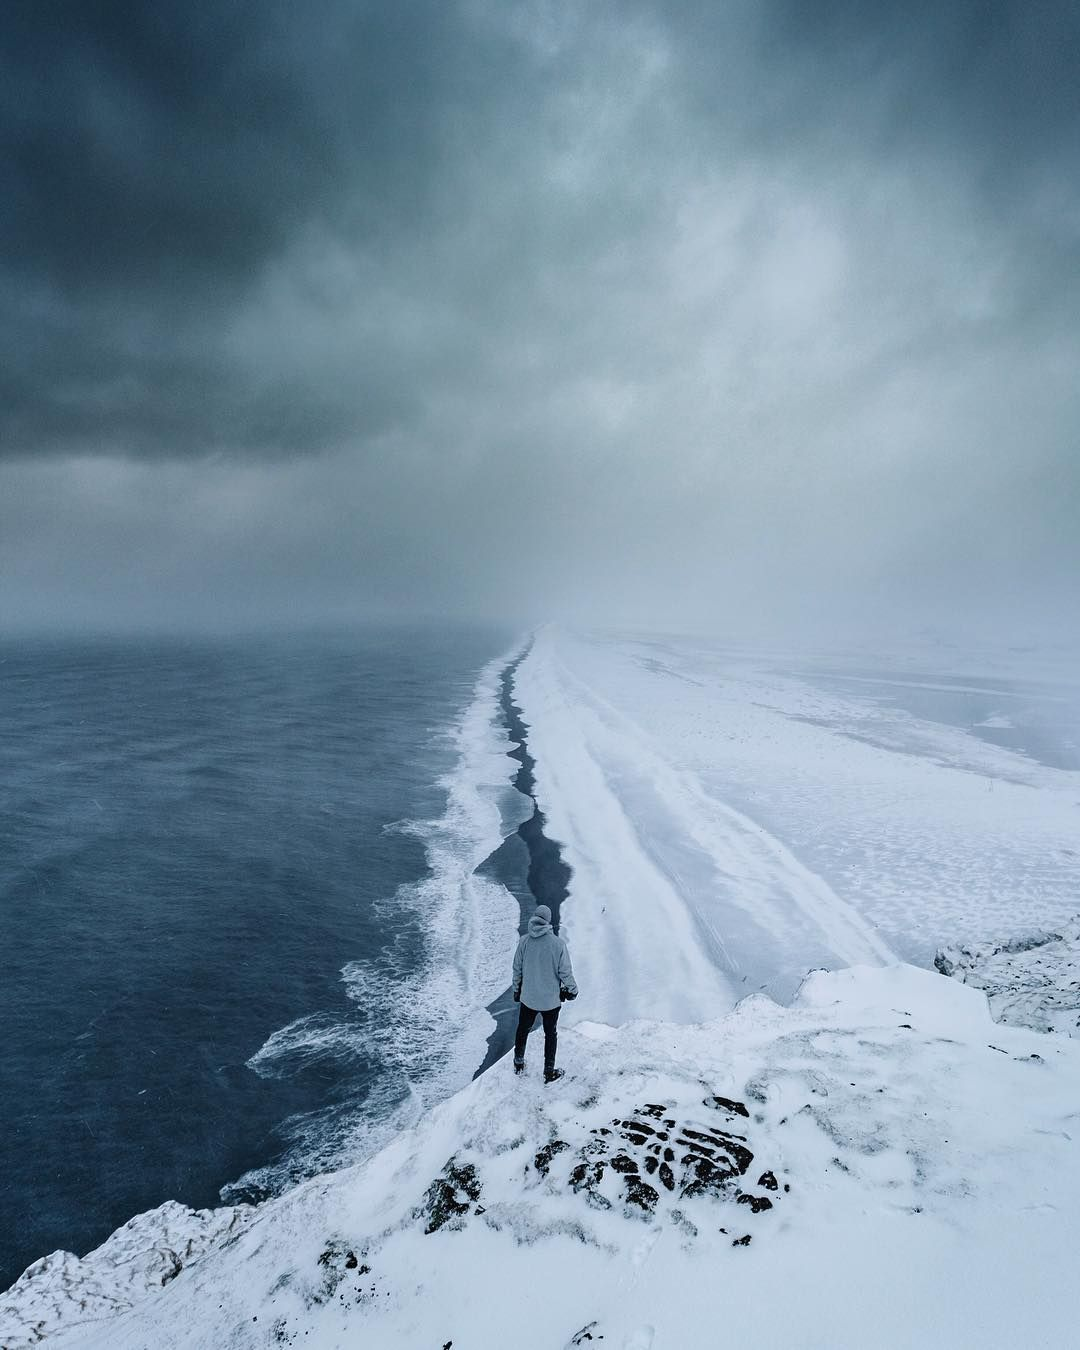 Stunning Adventure Photos From Iceland by Nikolaus Brinkmann #inspiration #photography